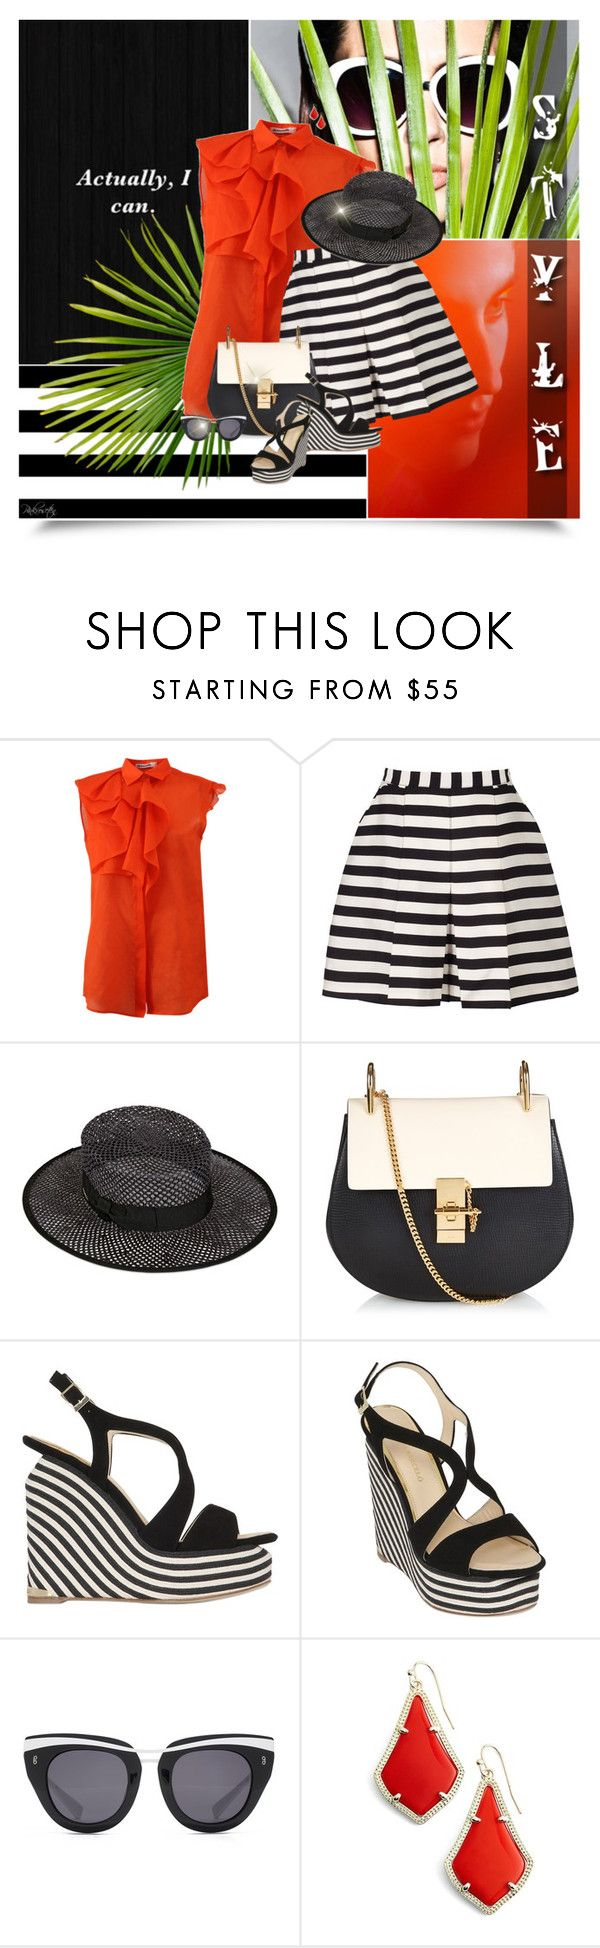 """Style"" by pinkroseten ❤ liked on Polyvore featuring Jil Sander, Reiss, SuperDuper Hats, Chloé, Paloma Barceló, HOOK LDN and Kendra Scott"